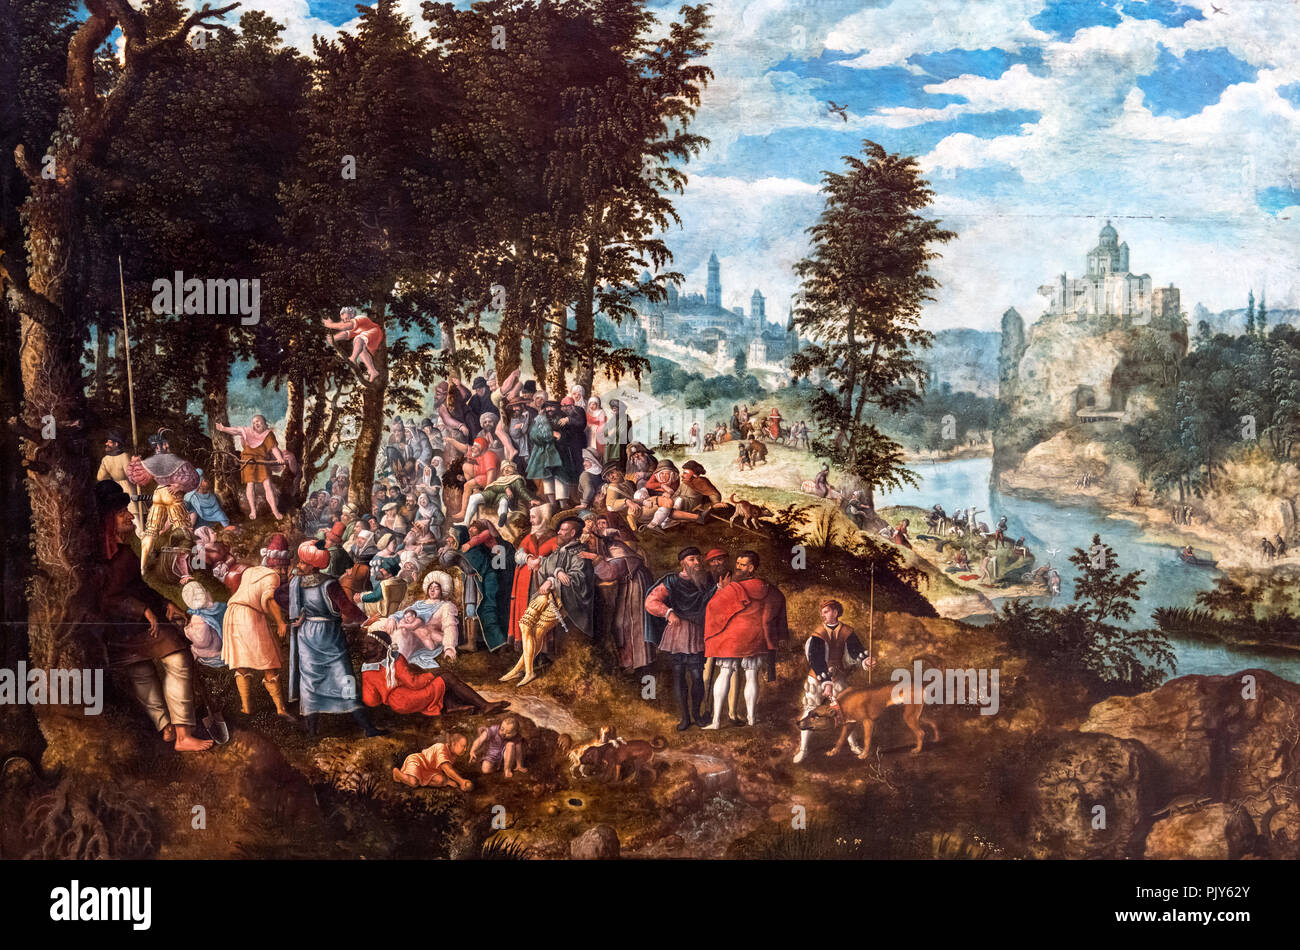 John the Baptist Preaching by Pieter Brueghel the Younger (1564-1638) - Stock Image